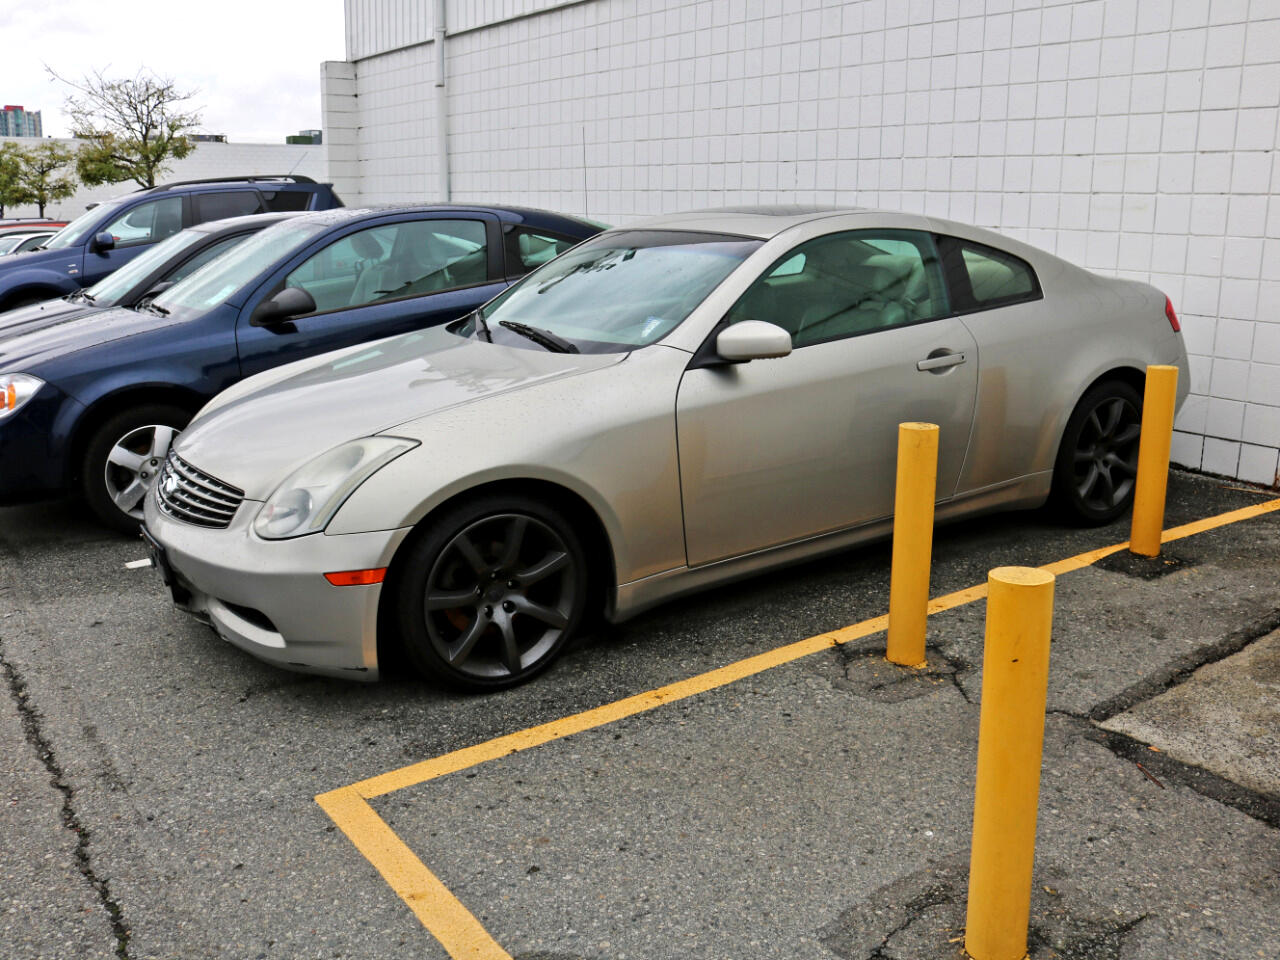 2003 Infiniti G35 Mechanic Special Needs TLC Come and check it out b